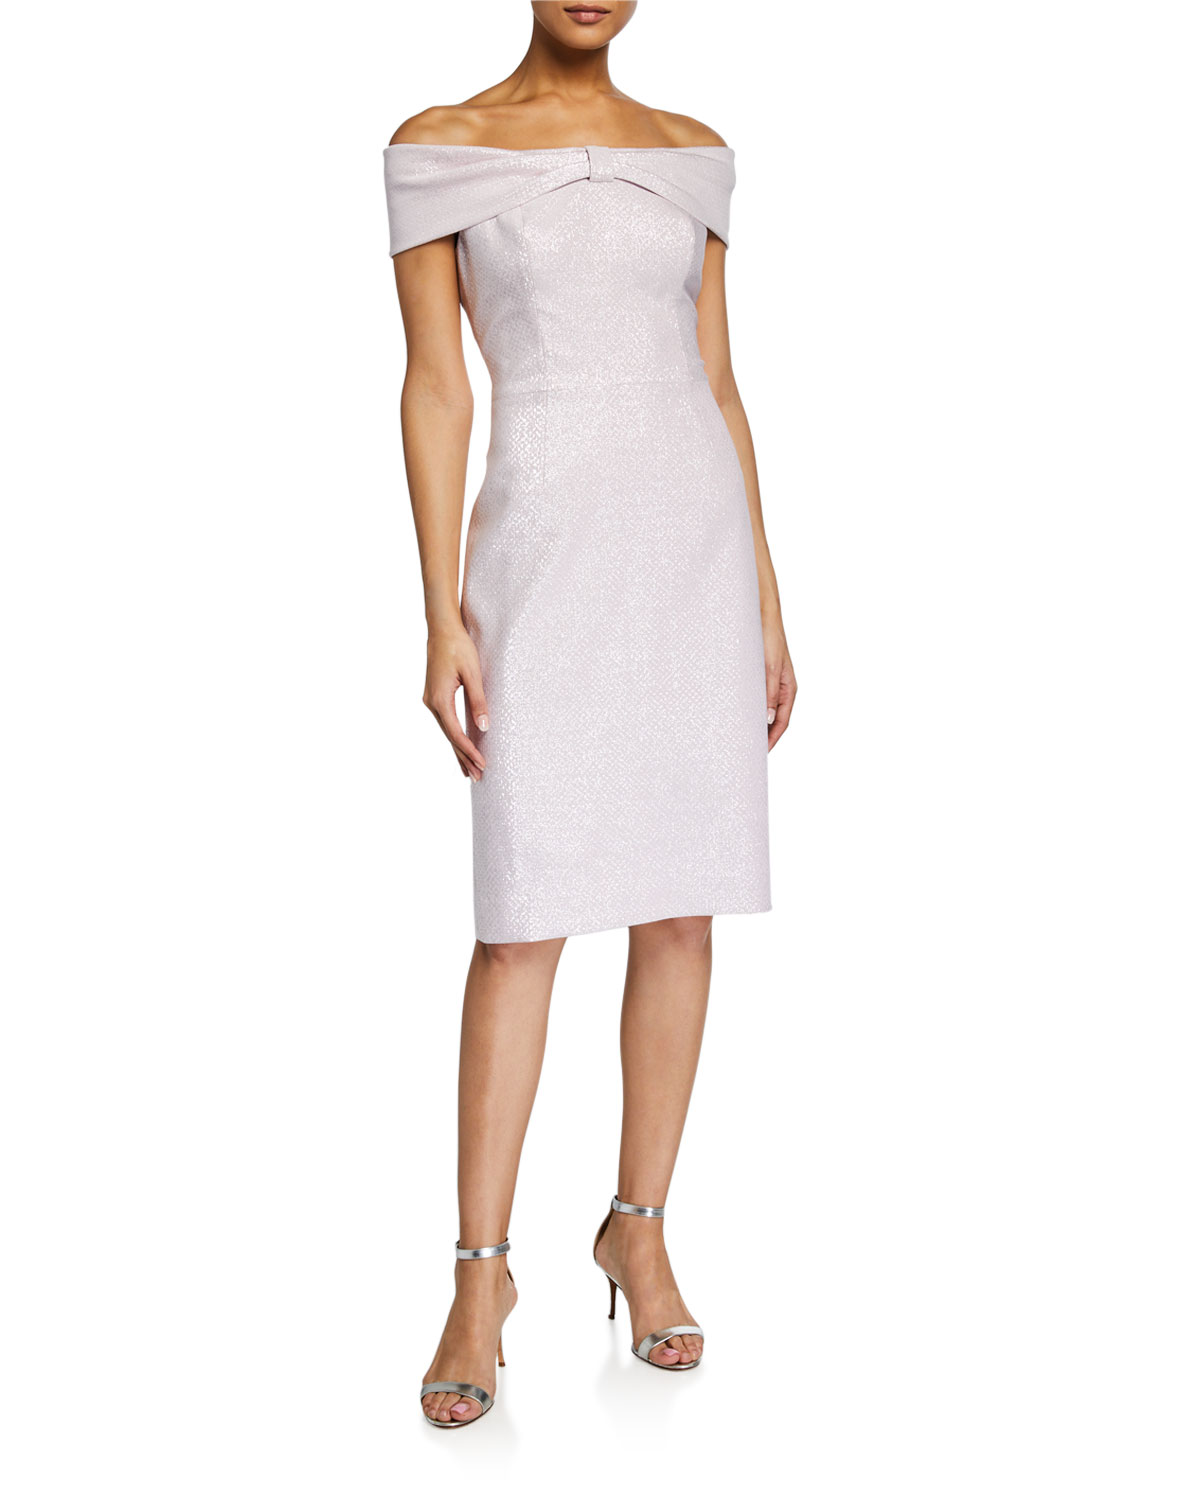 Rickie Freeman for Teri Jon Off-the-Shoulder Bow-Front Stretch Metallic Sheath Dress